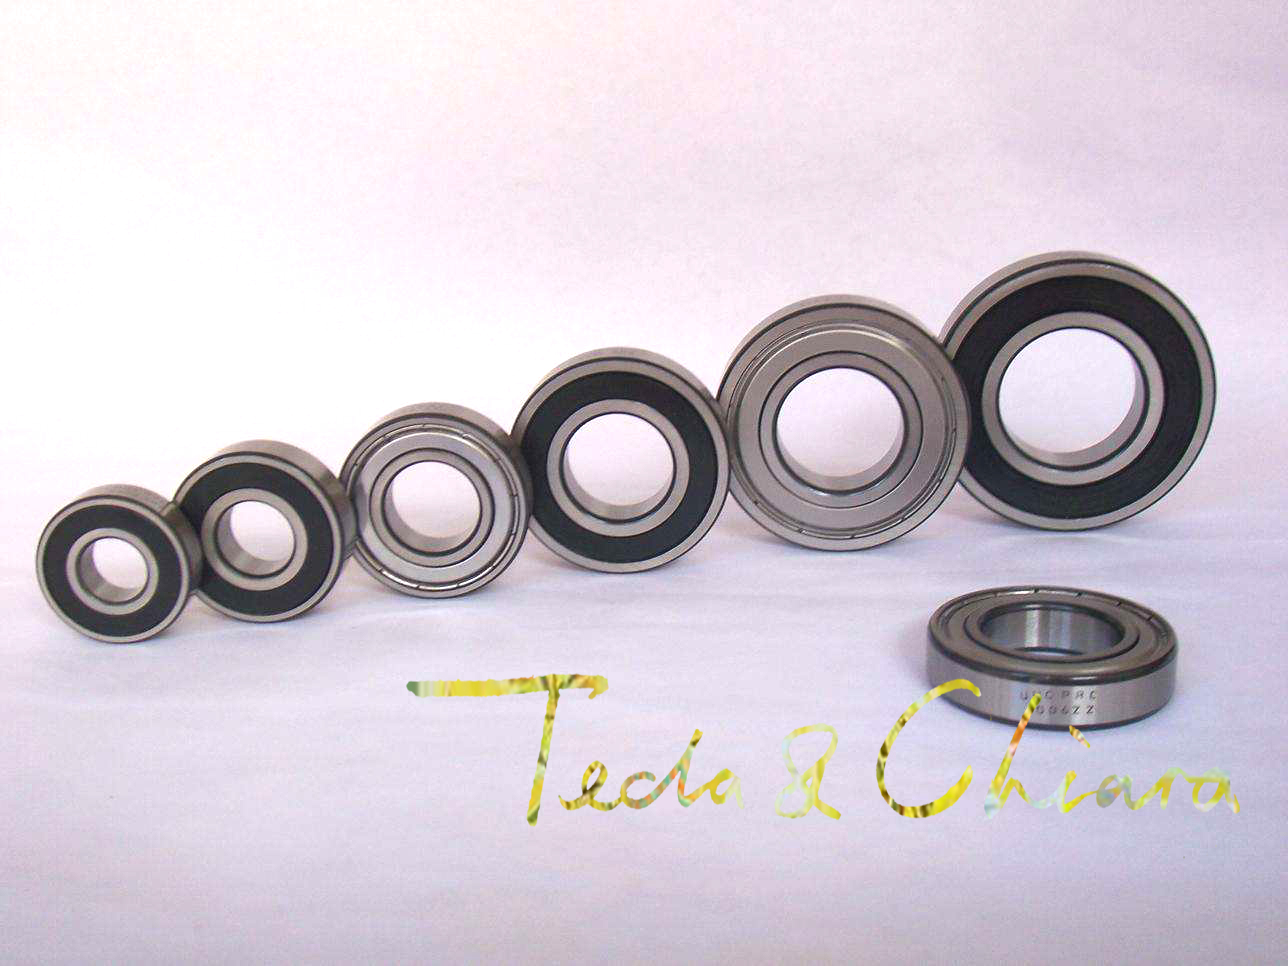 603 603ZZ 603RS 603-2Z 603Z 603-2RS ZZ RS RZ 2RZ Deep Groove Ball Bearings 3 x 9 x 5mm High Quality free shipping 25x47x12mm deep groove ball bearings 6005 zz 2z 6005zz bearing 6005zz 6005 2rs